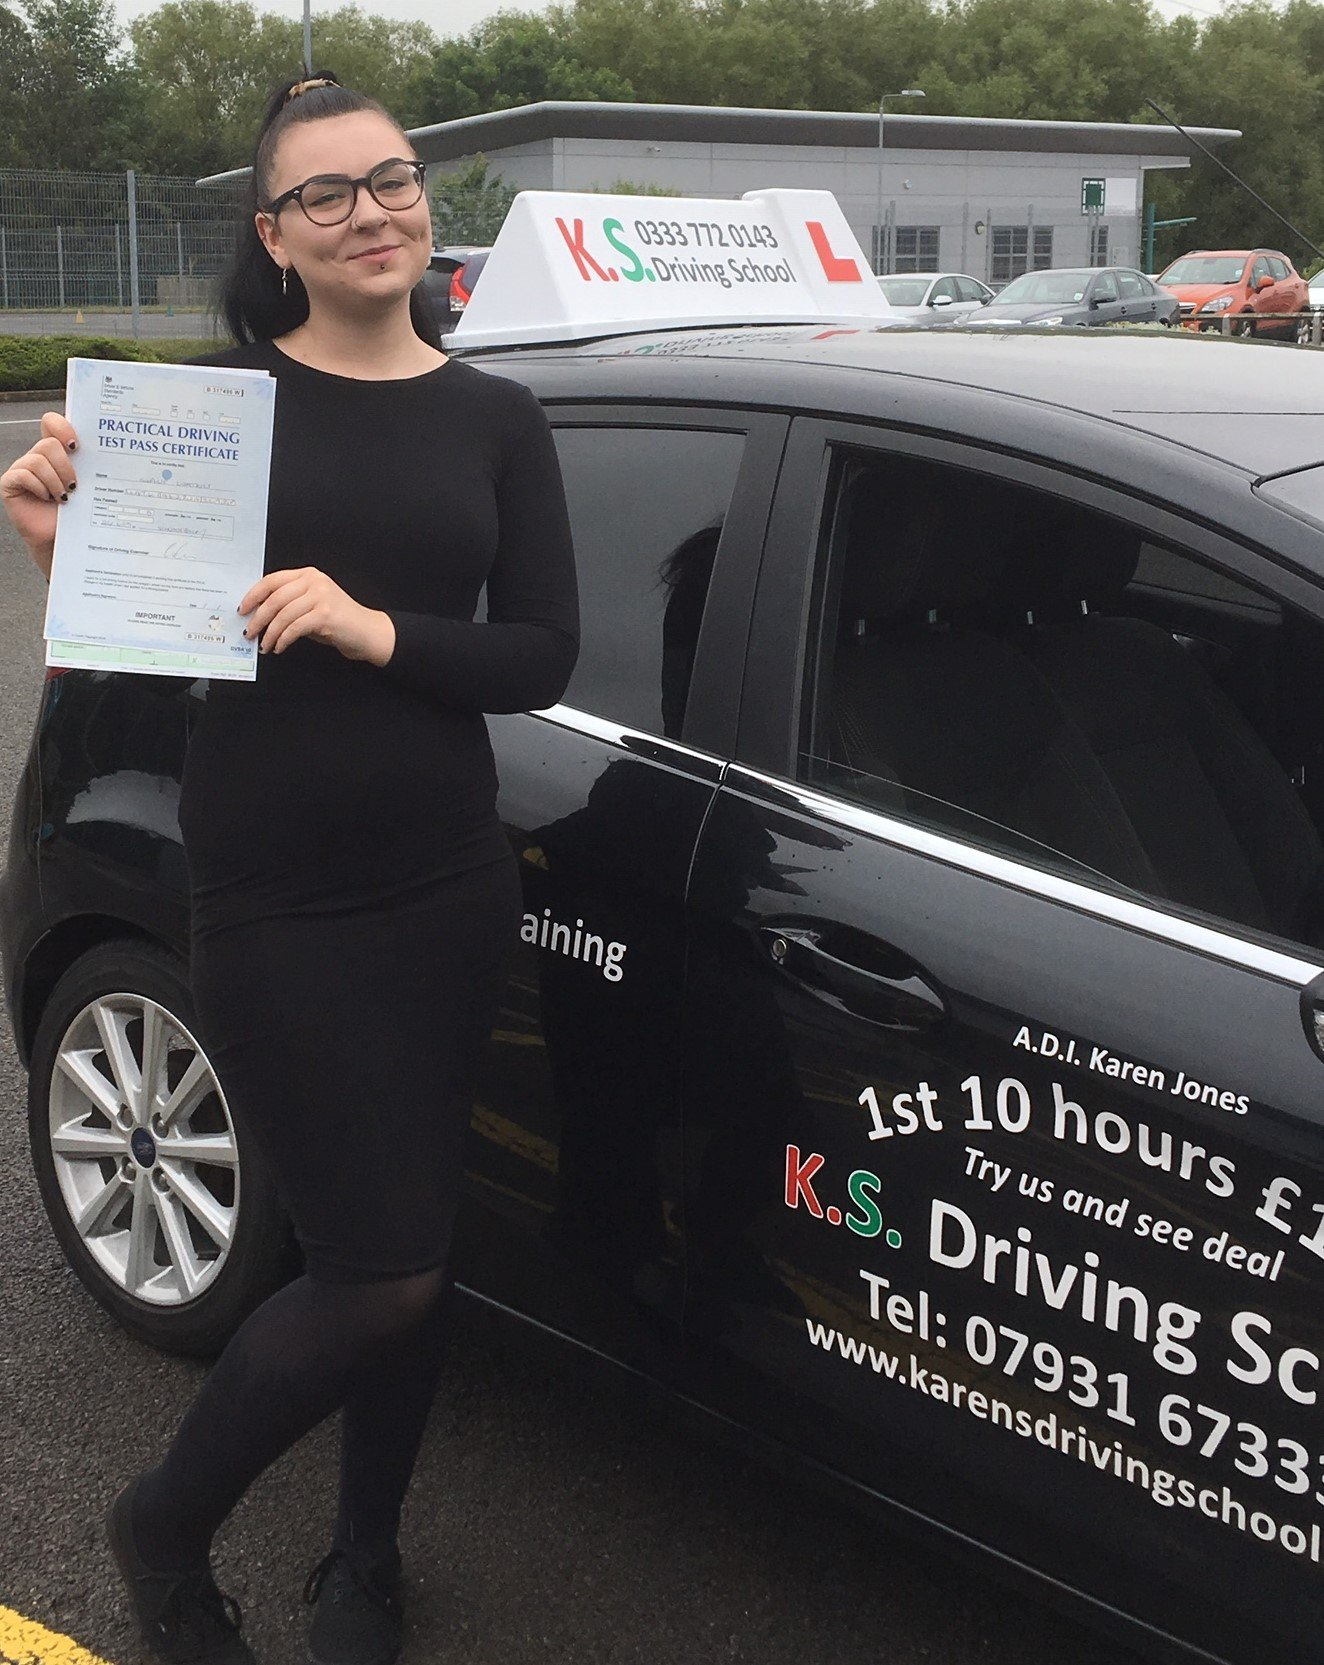 Driving Lessons Shrewsbury 26th June